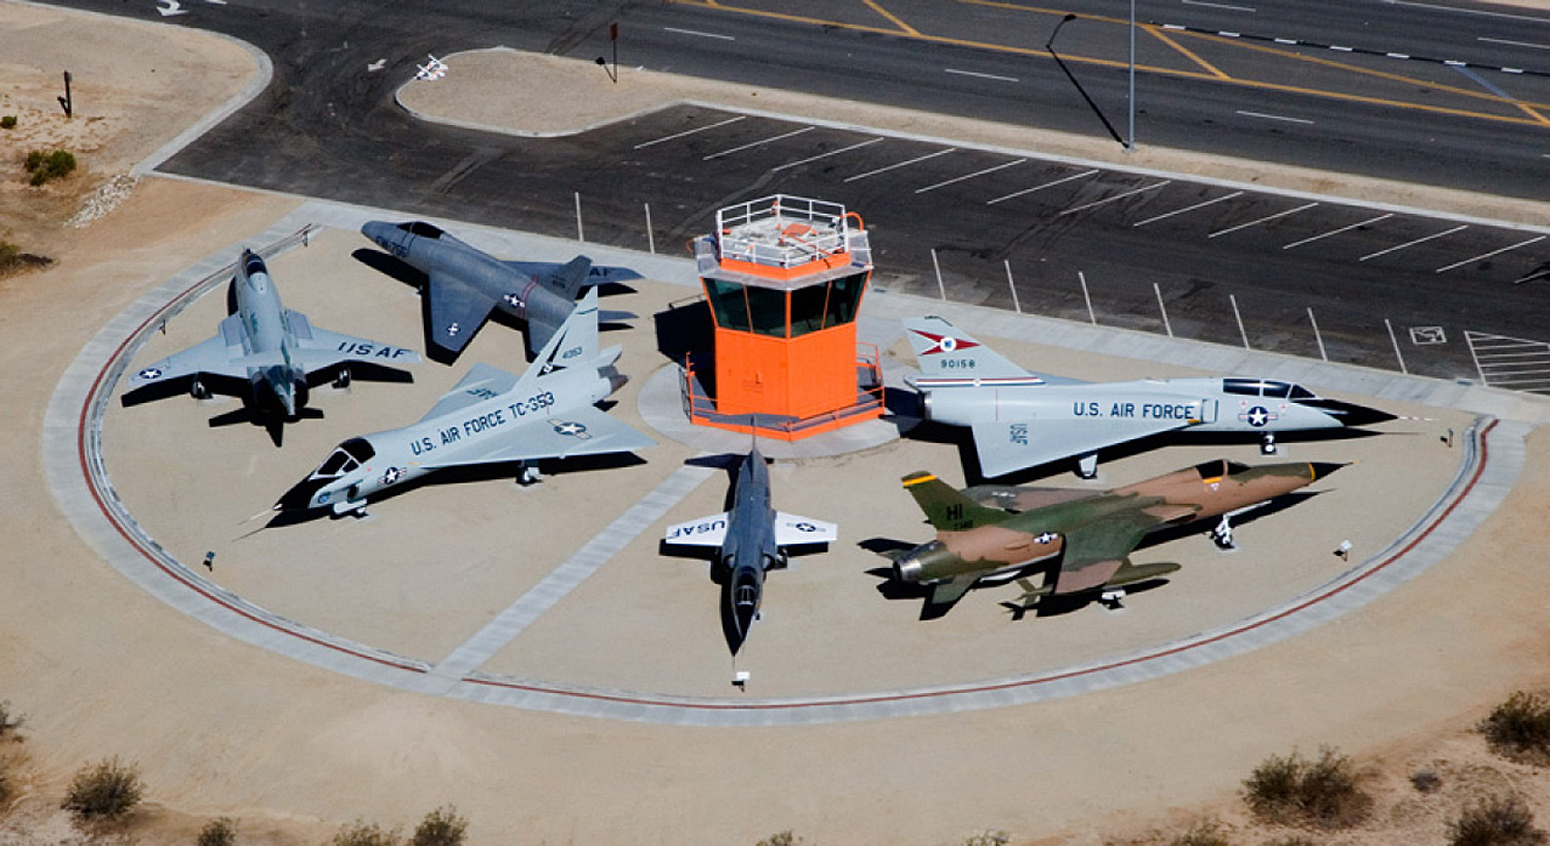 National Air Force Museum >> California Aerospace and Aviation Museums | NASA